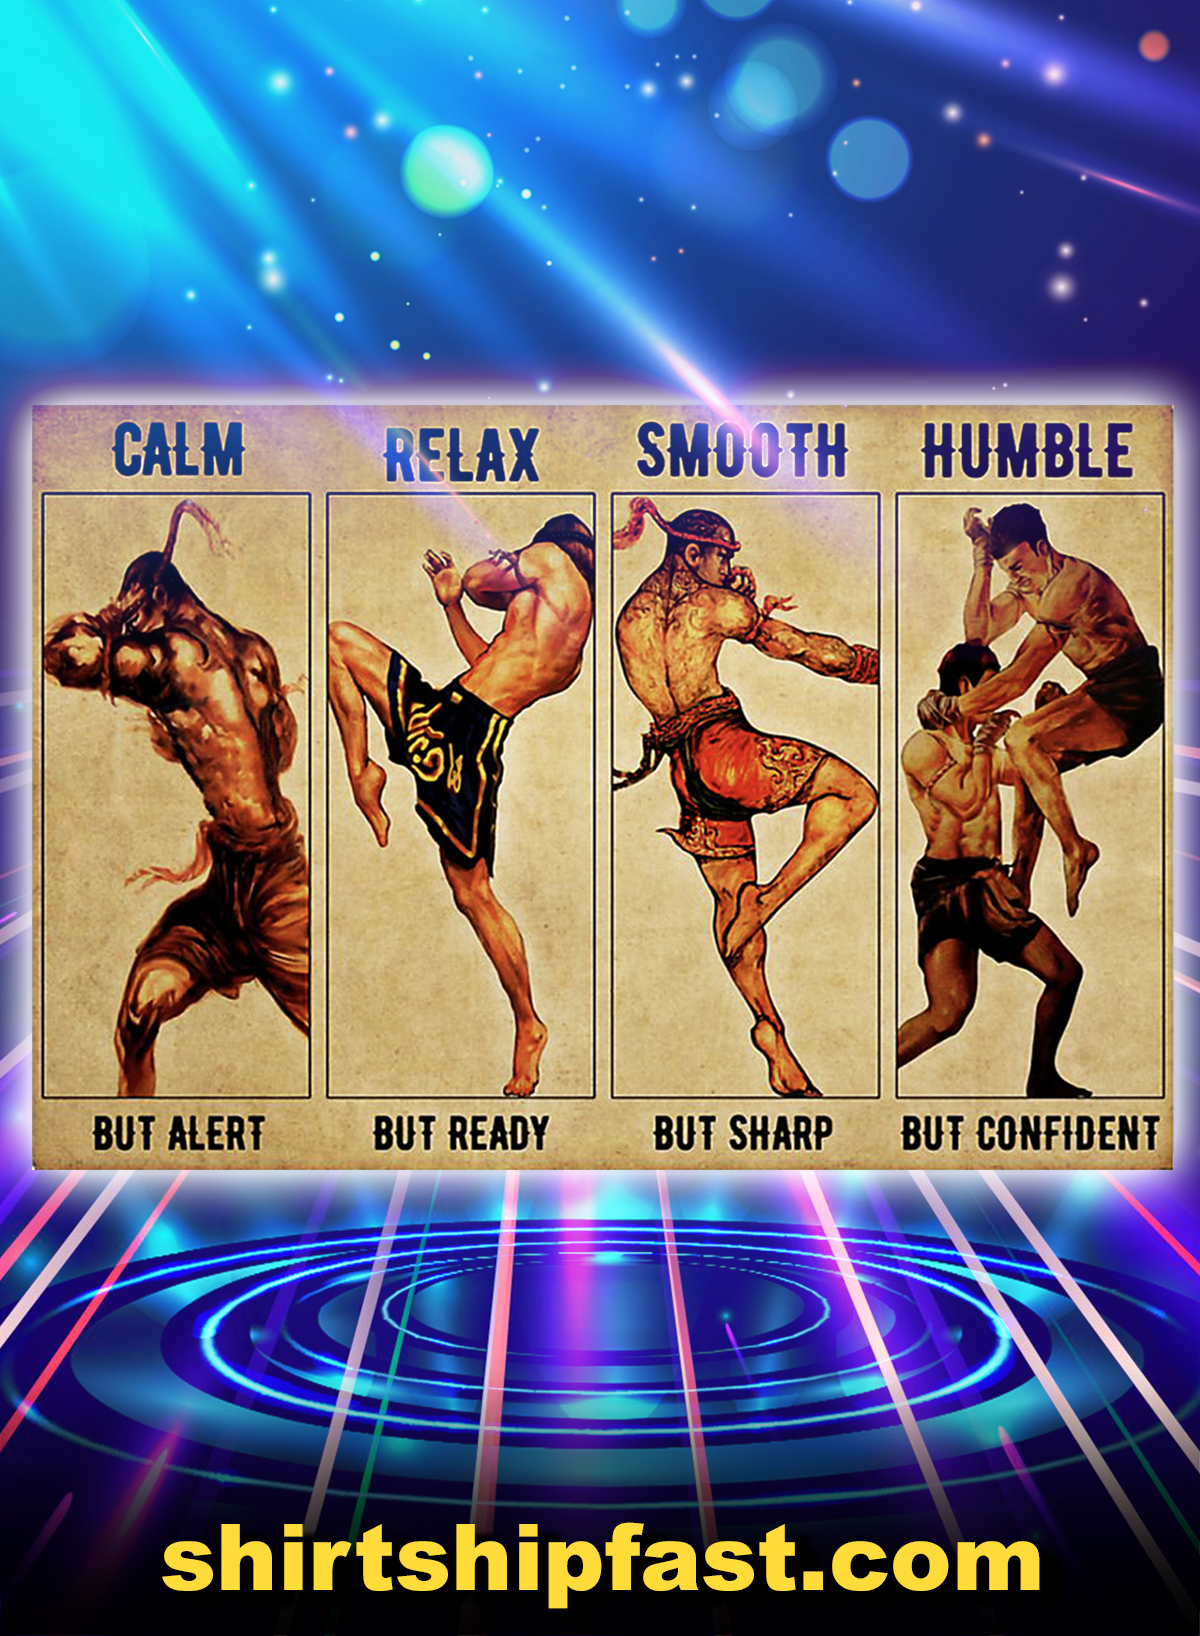 Poster Muay Thai Calm relax smooth humble - A1